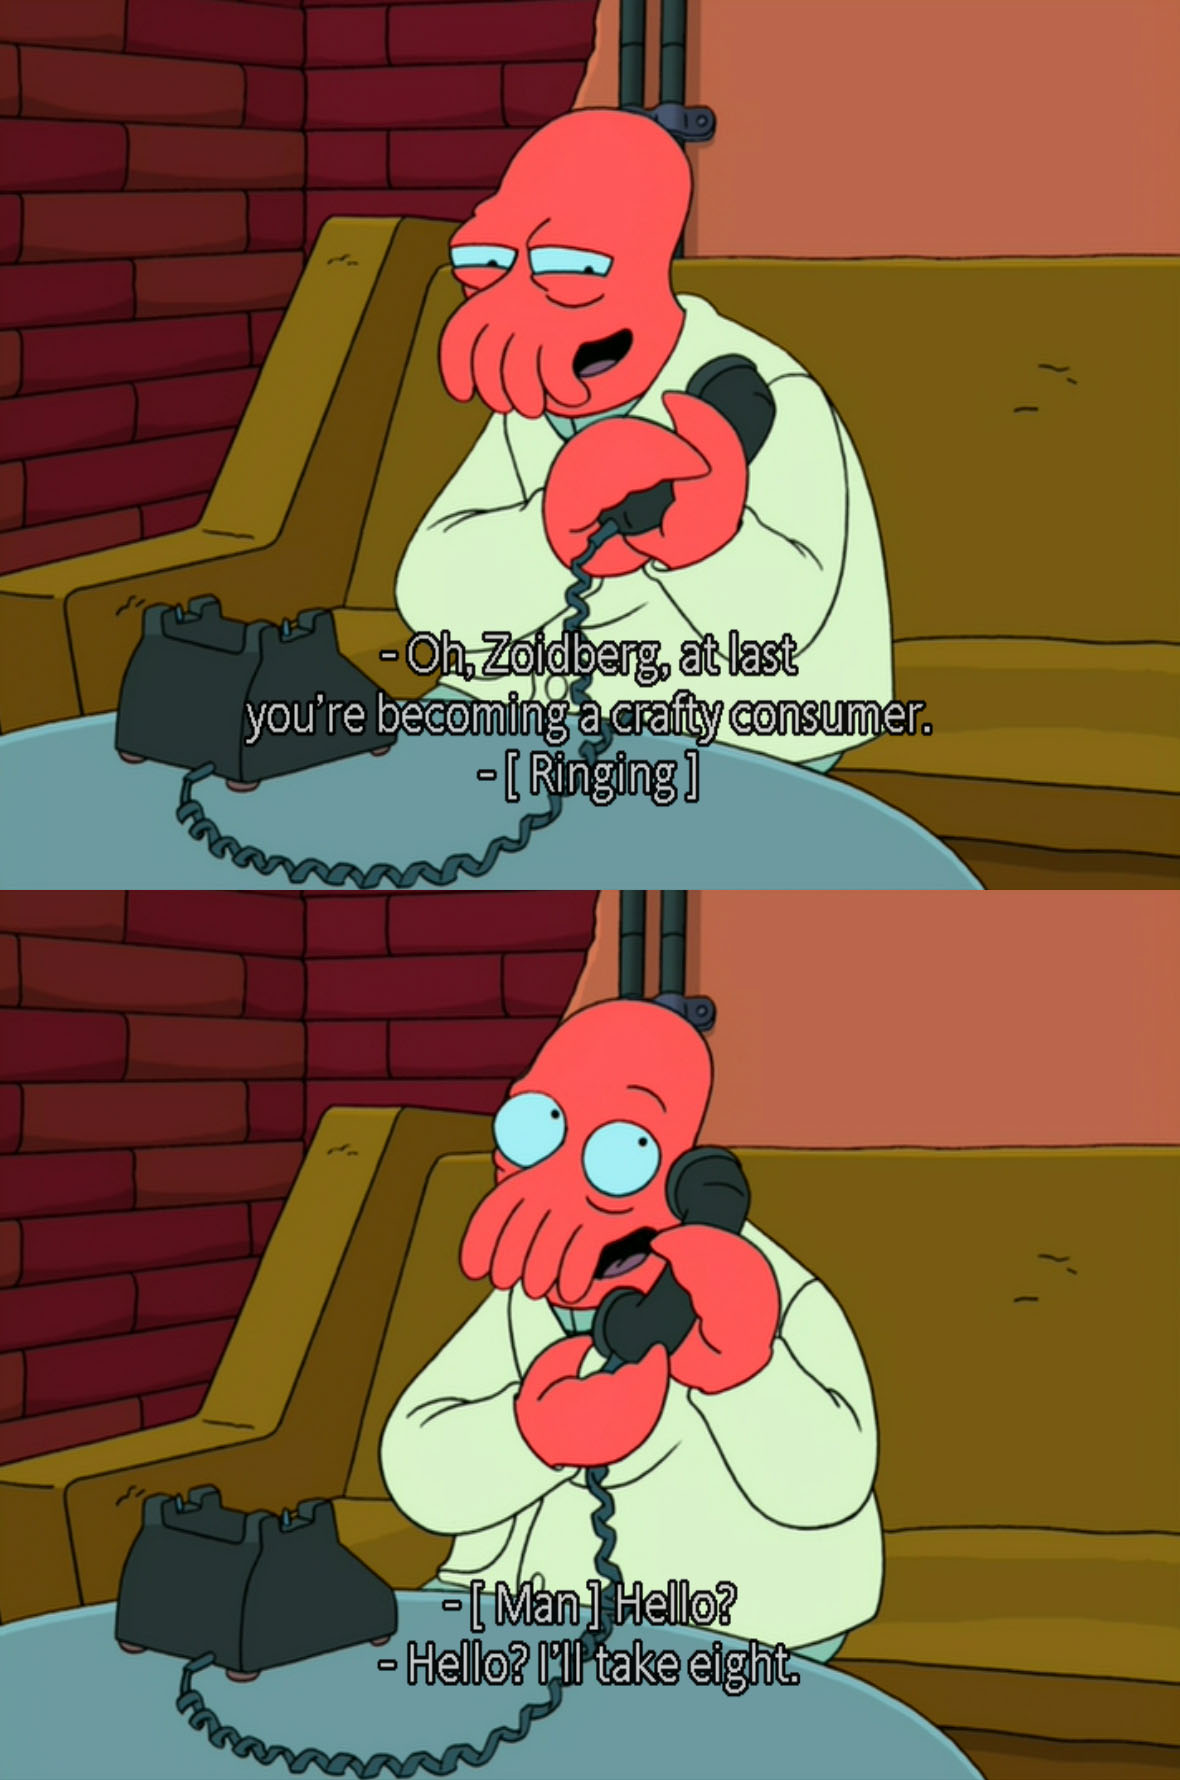 Zoidberg-Is-Learning-How-To-Be-a-Crafty-Consumer-Of-Products-On-The-Phone-In-Futurama.jpg